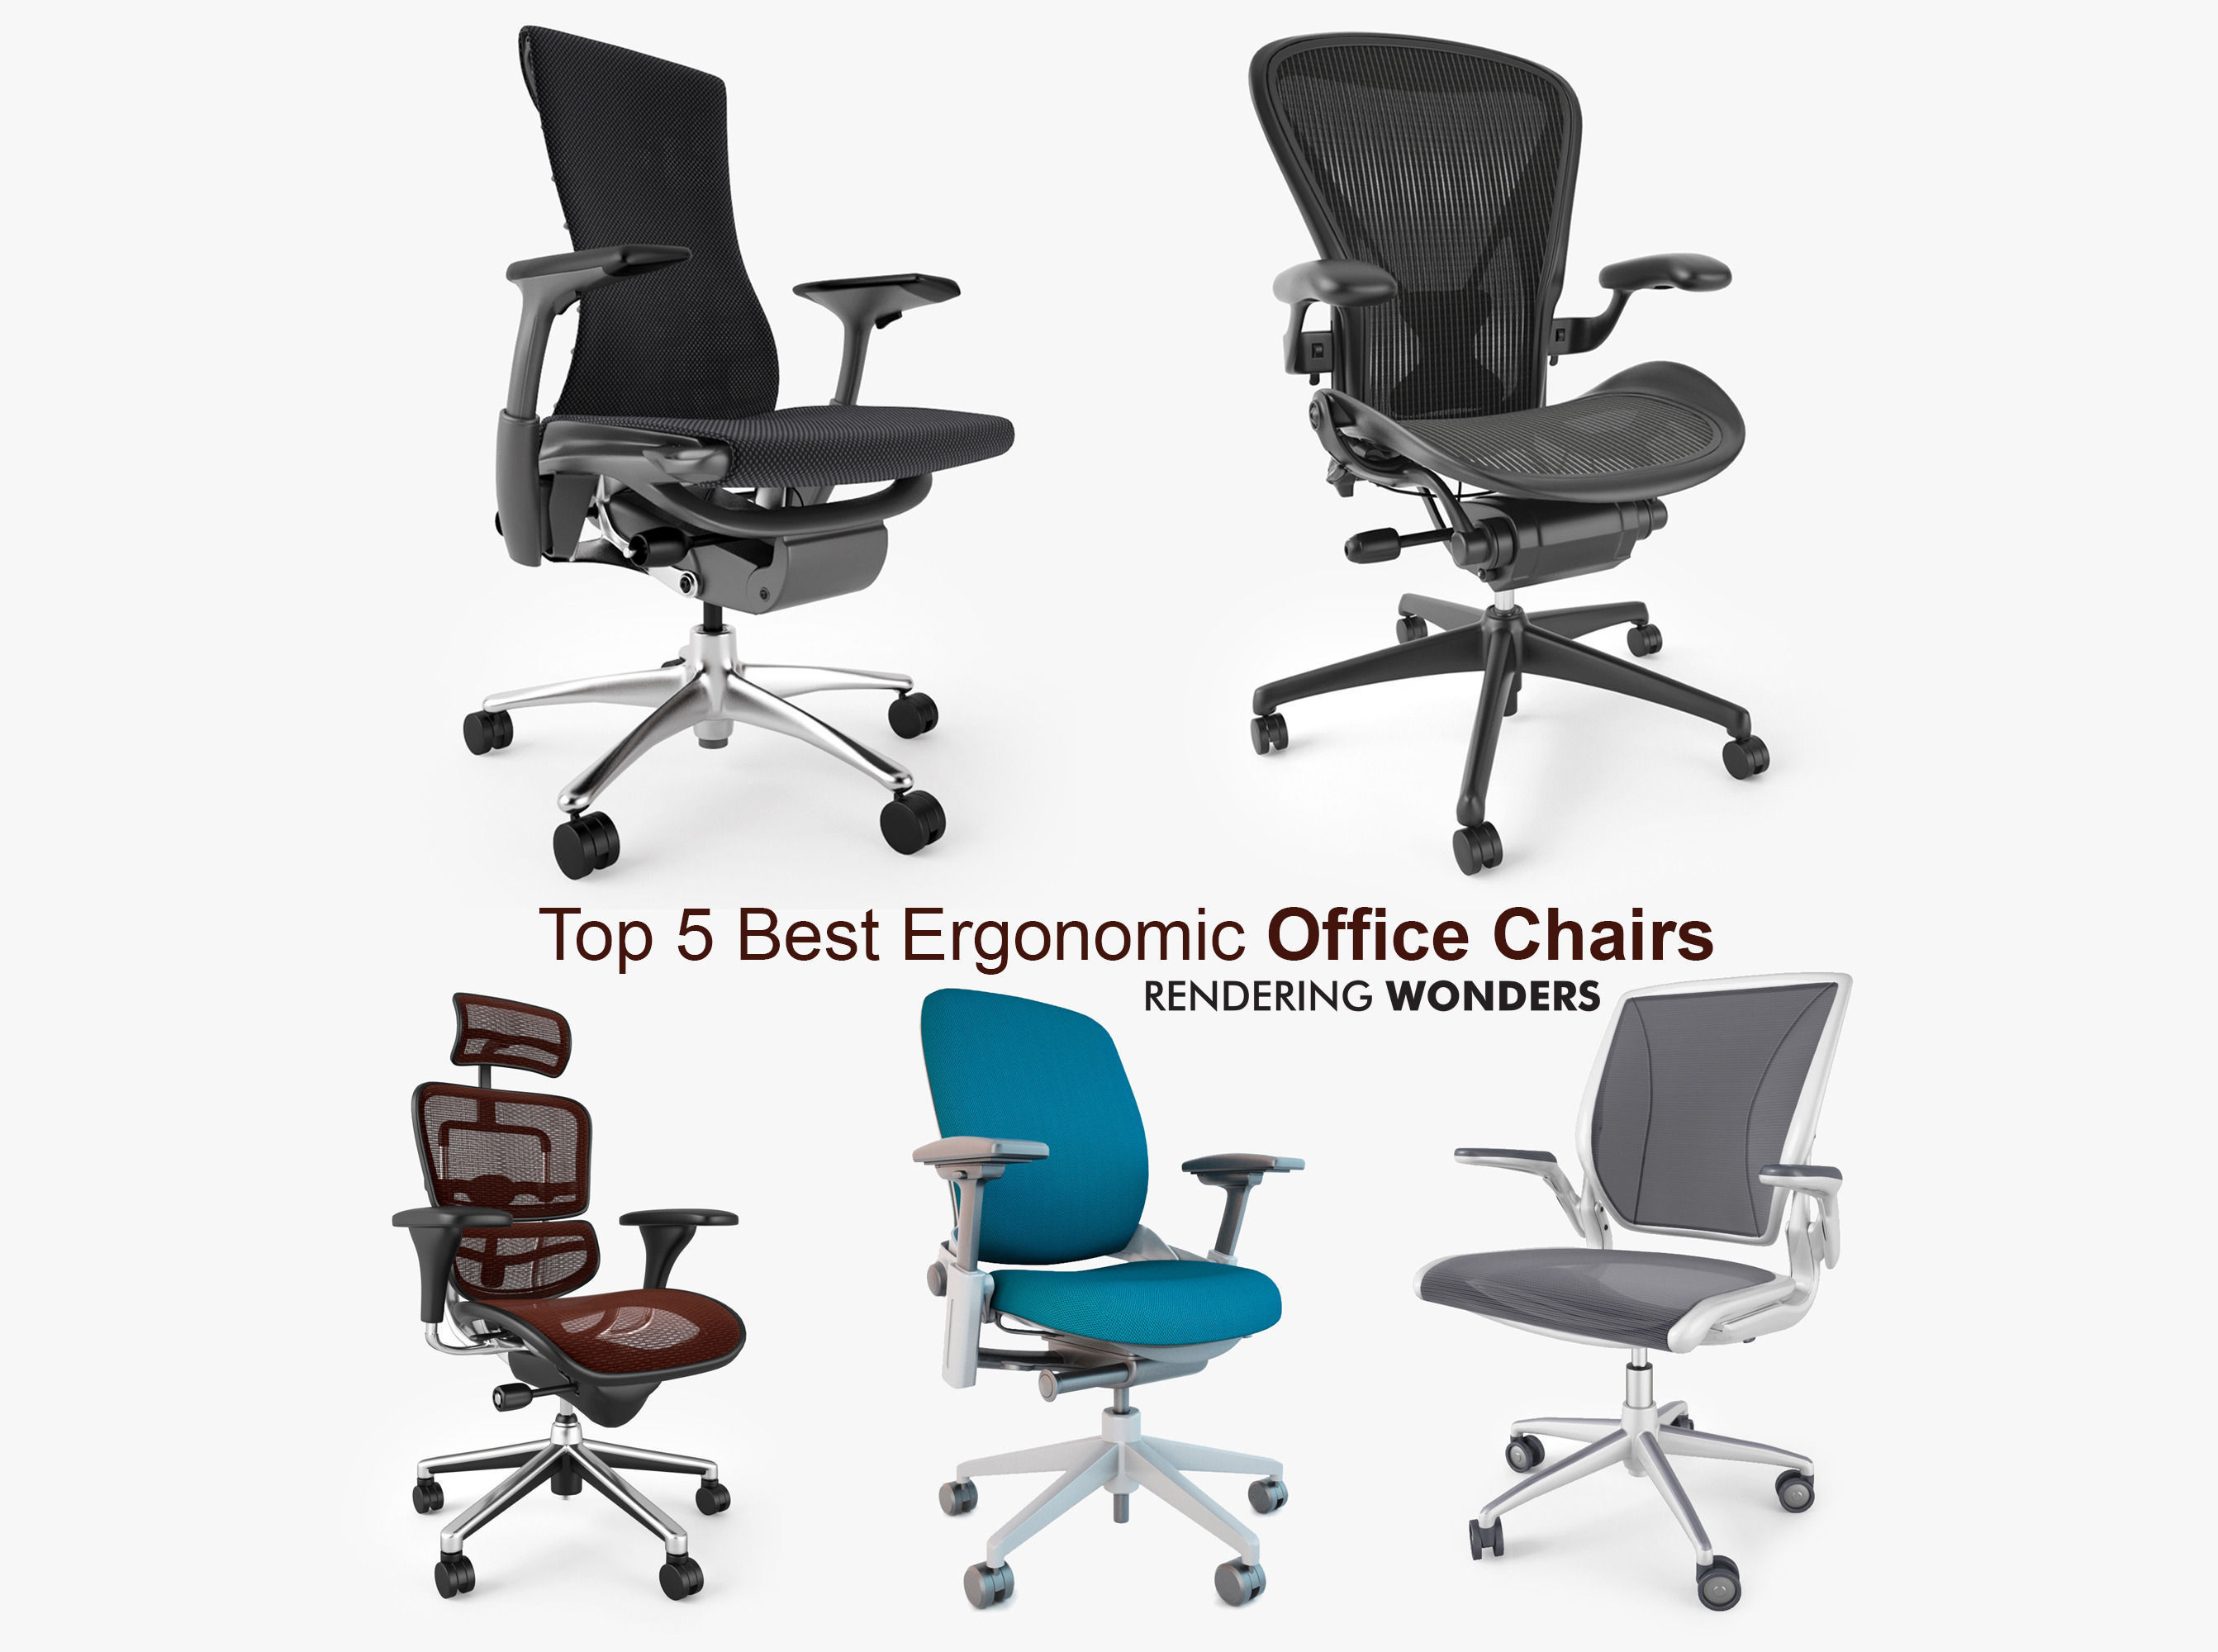 Top 5 Best Ergonomic fice Chairs 3D